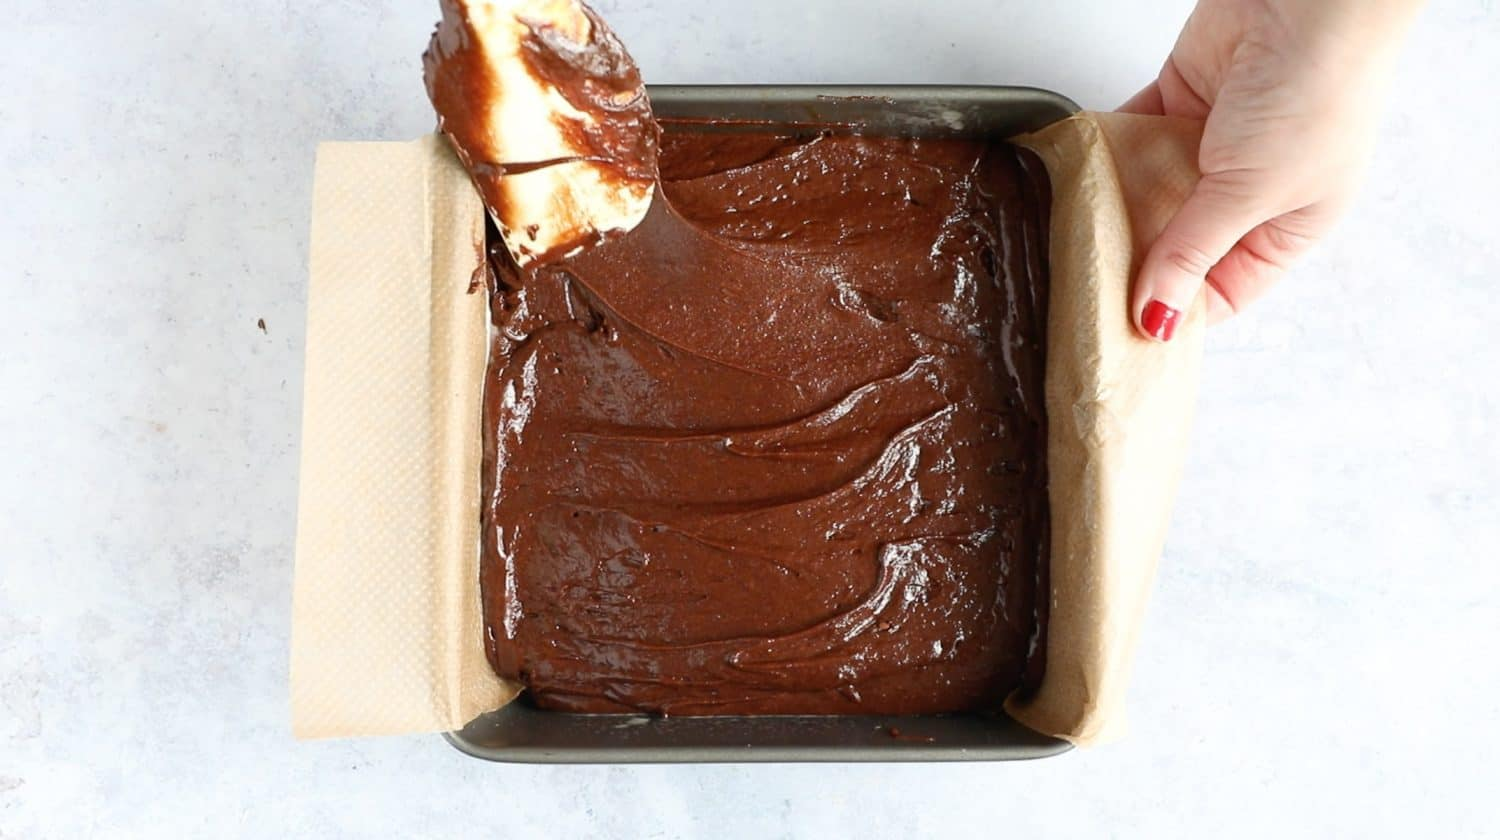 A baking tin filled with brownie batter.